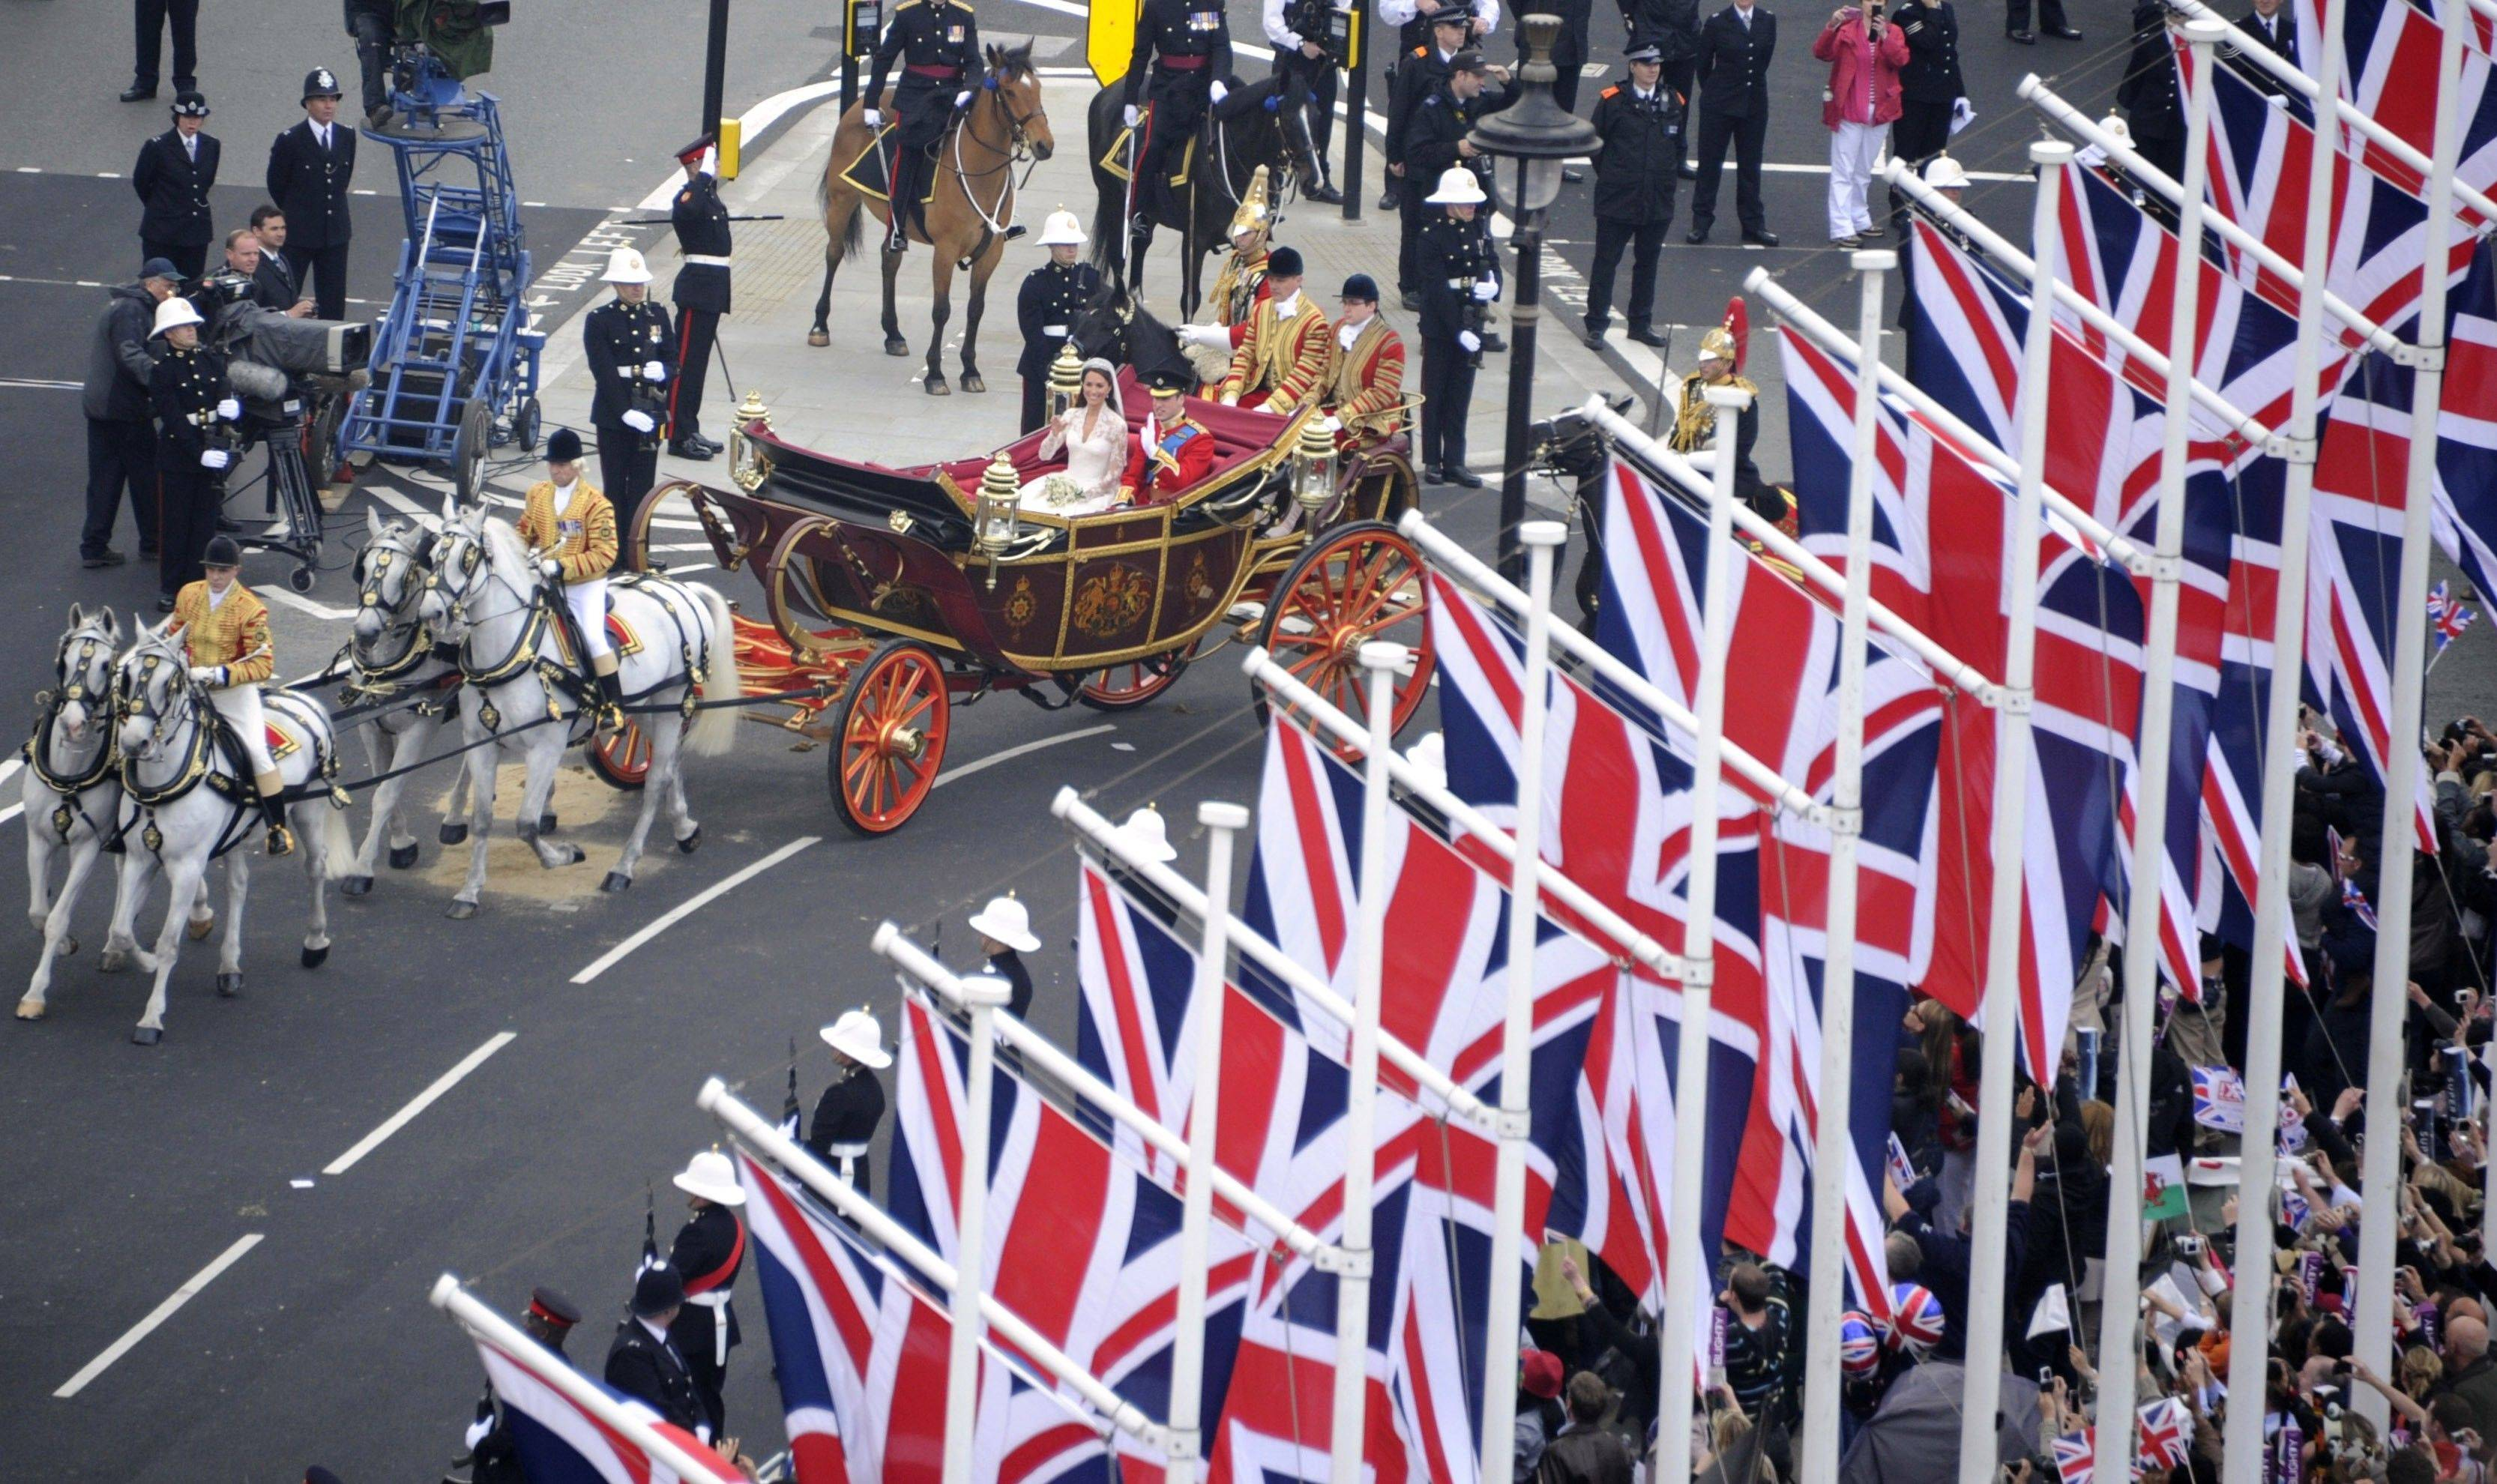 Britain's Prince William and Kate, the Duchess of Cambridge, wave as they travel in the 1902 State Landau carriage along the processional route to Buckingham Palace, London, Friday April 29, 2011.